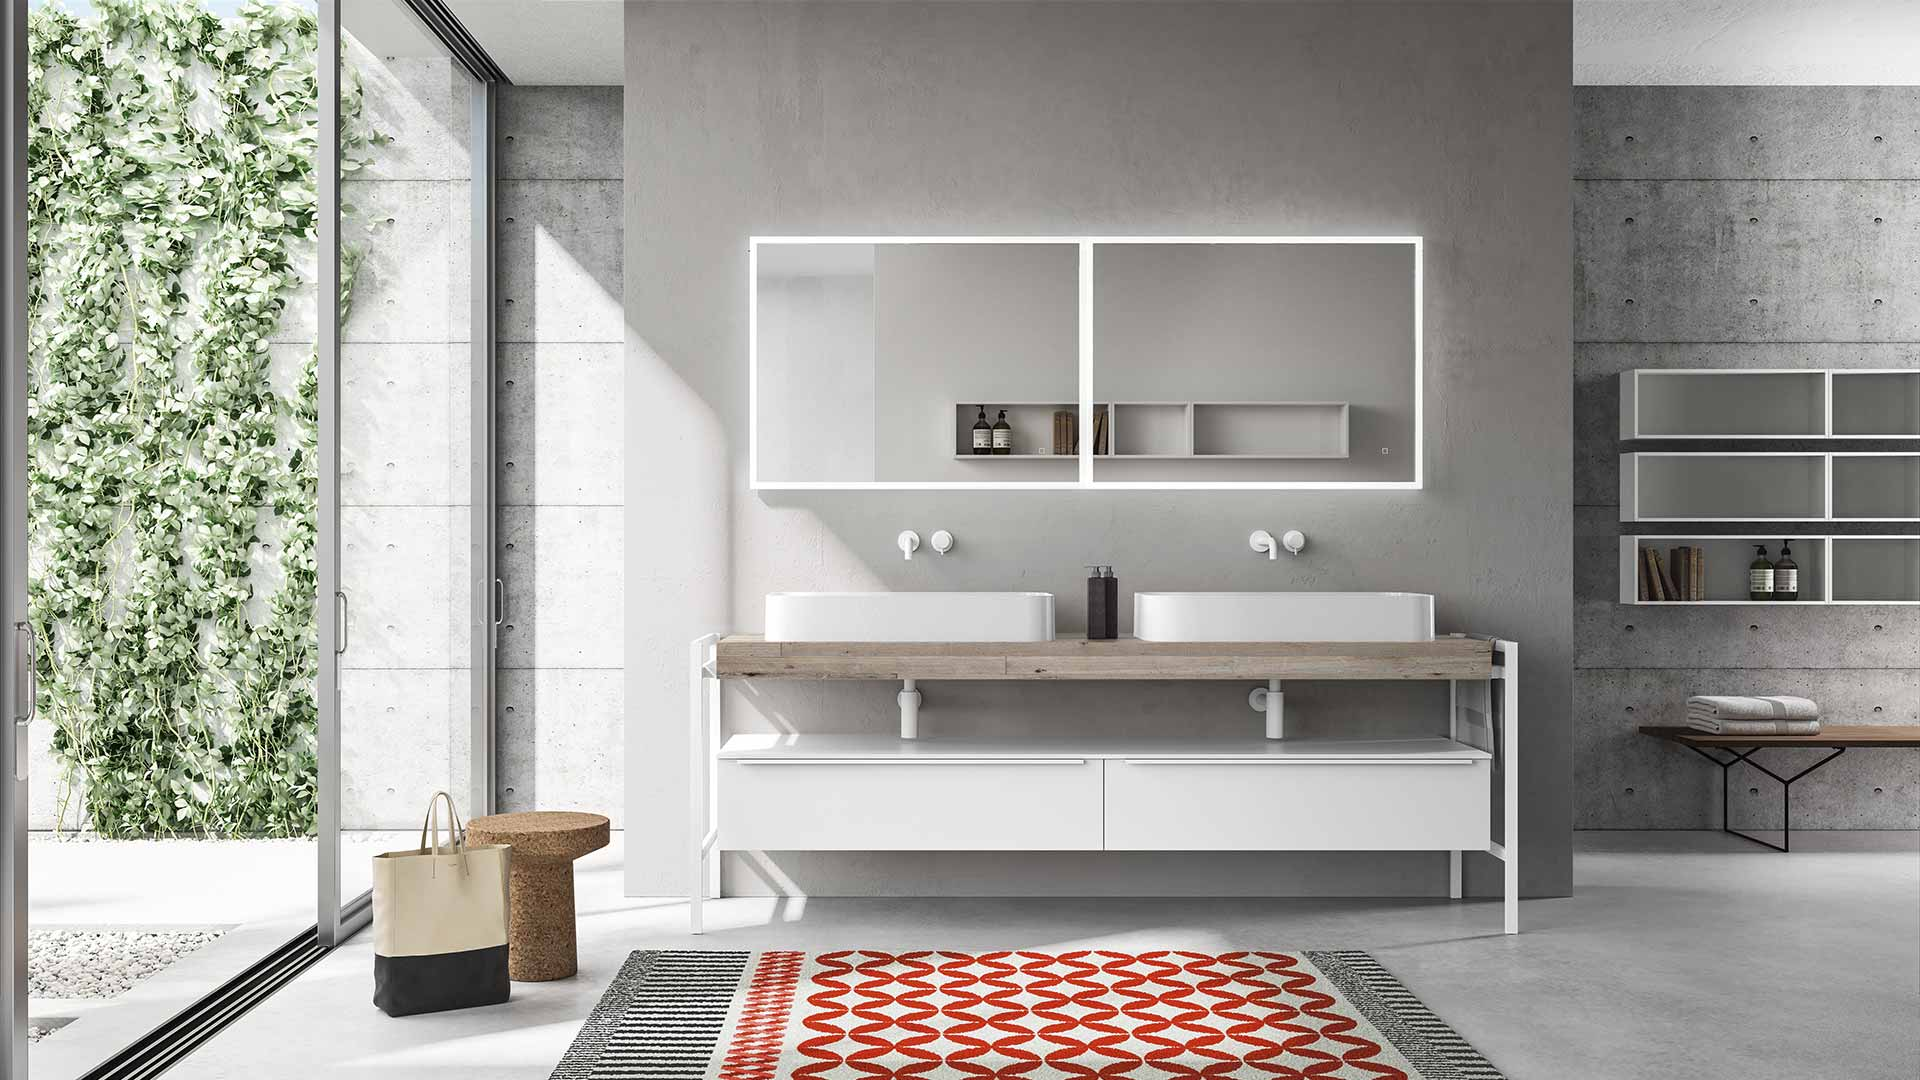 Bagno Tiles Berloni Bagno And Sign At Salone Del Mobile 2018 Milan